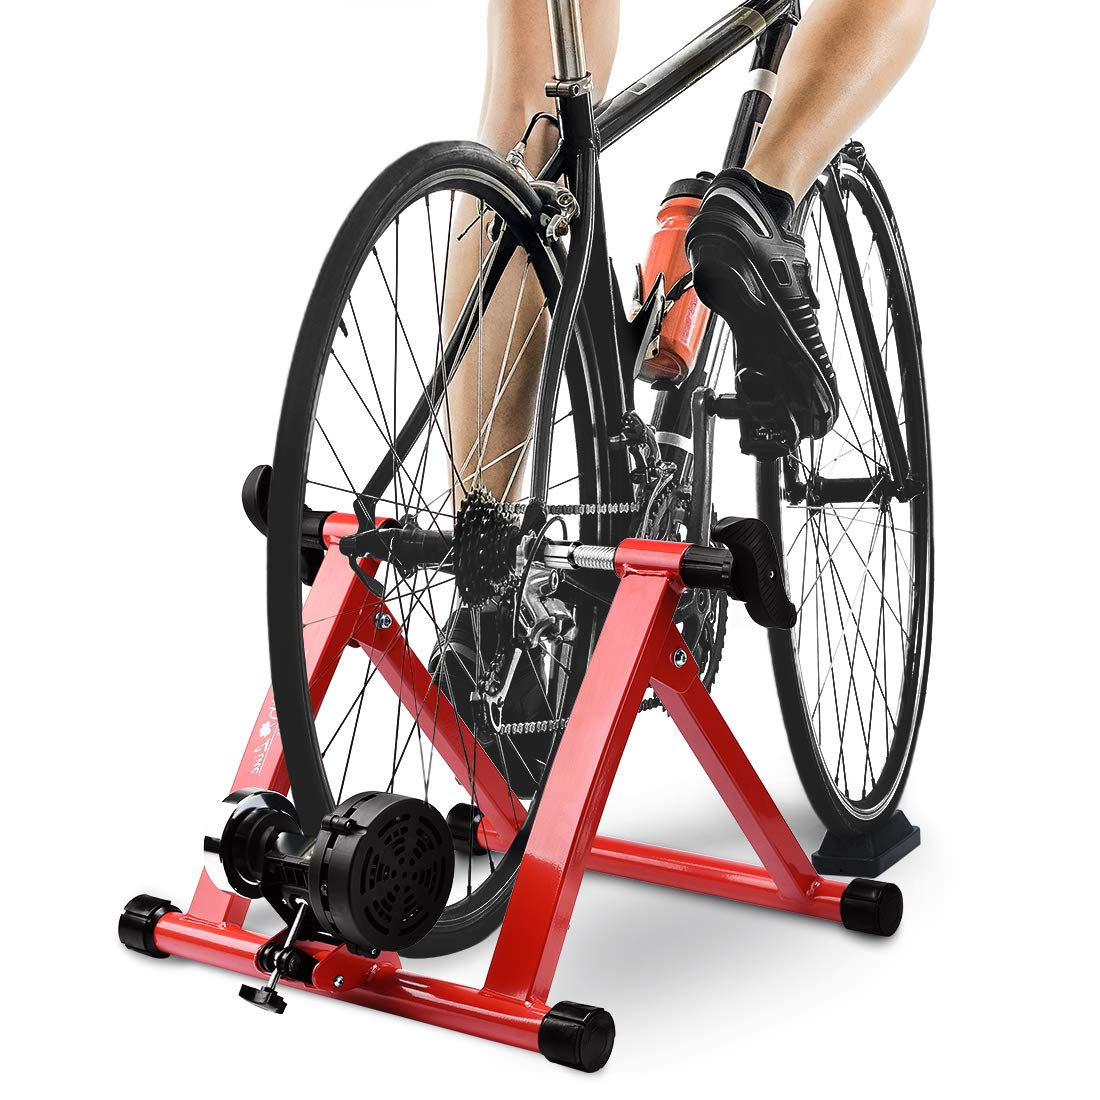 HEALTH LINE PRODUCT 8 Levels Magnetic Resistance Indoor Bike Trainer,Fits 26-28 inch 700c Bicycle Exercise Trainer Stand w Front Wheel Block and Quick Release Skewer by HEALTH LINE PRODUCT